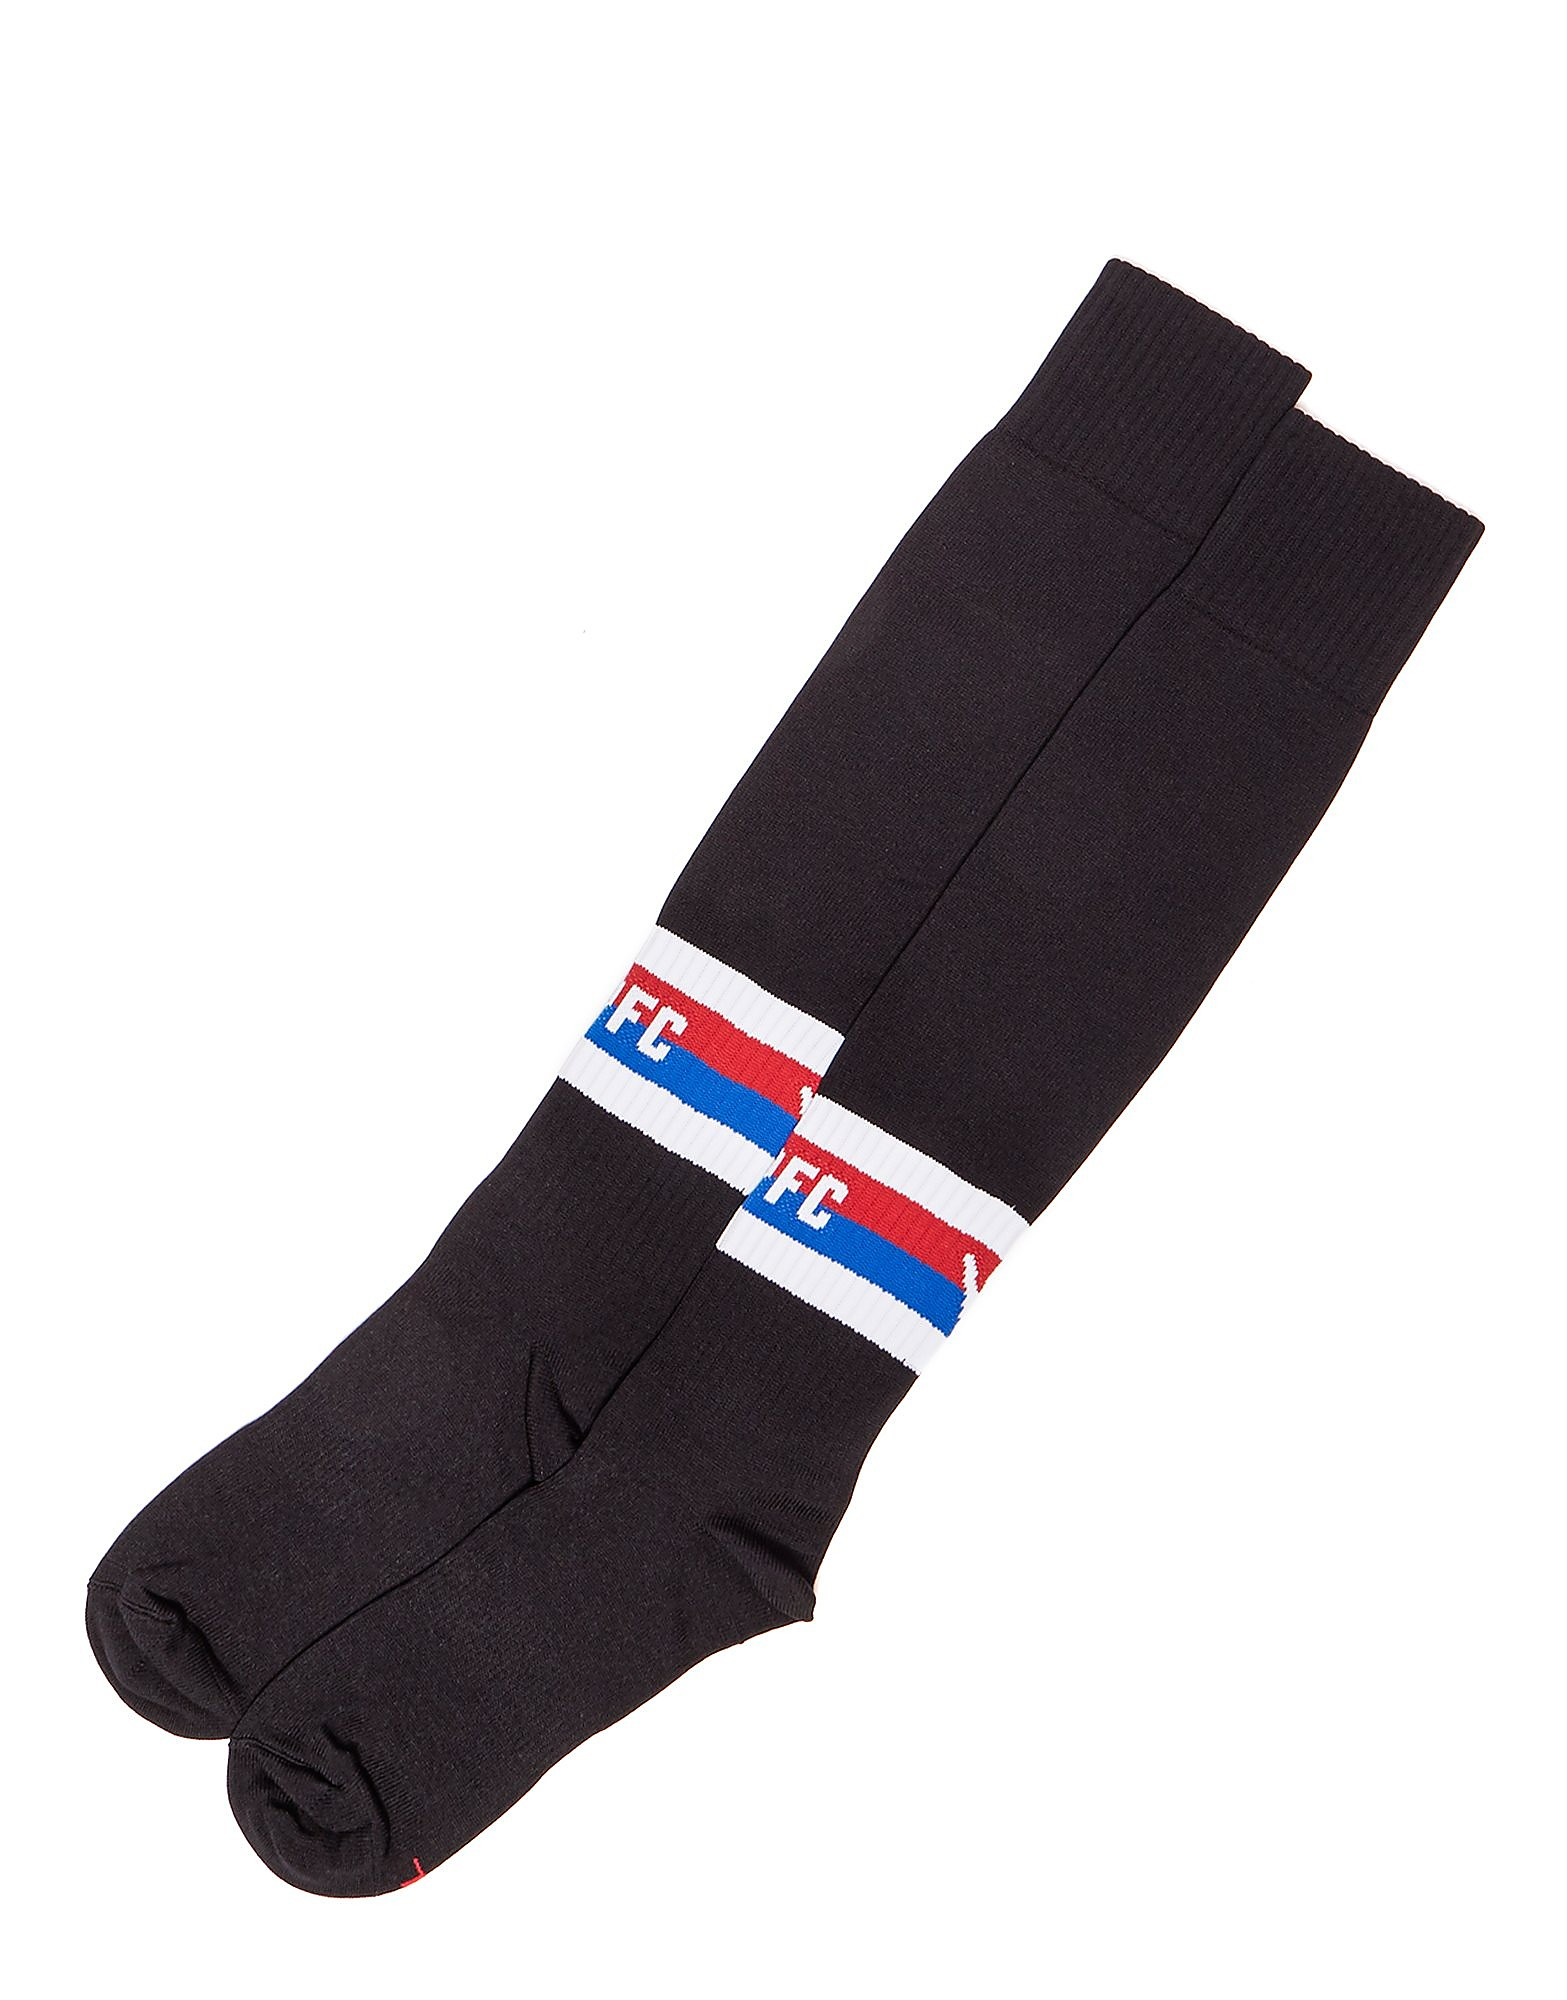 Macron Chaussettes Crystal Palace FC Away 17/18 Homme - Black/Blue/Red, Black/Blue/Red